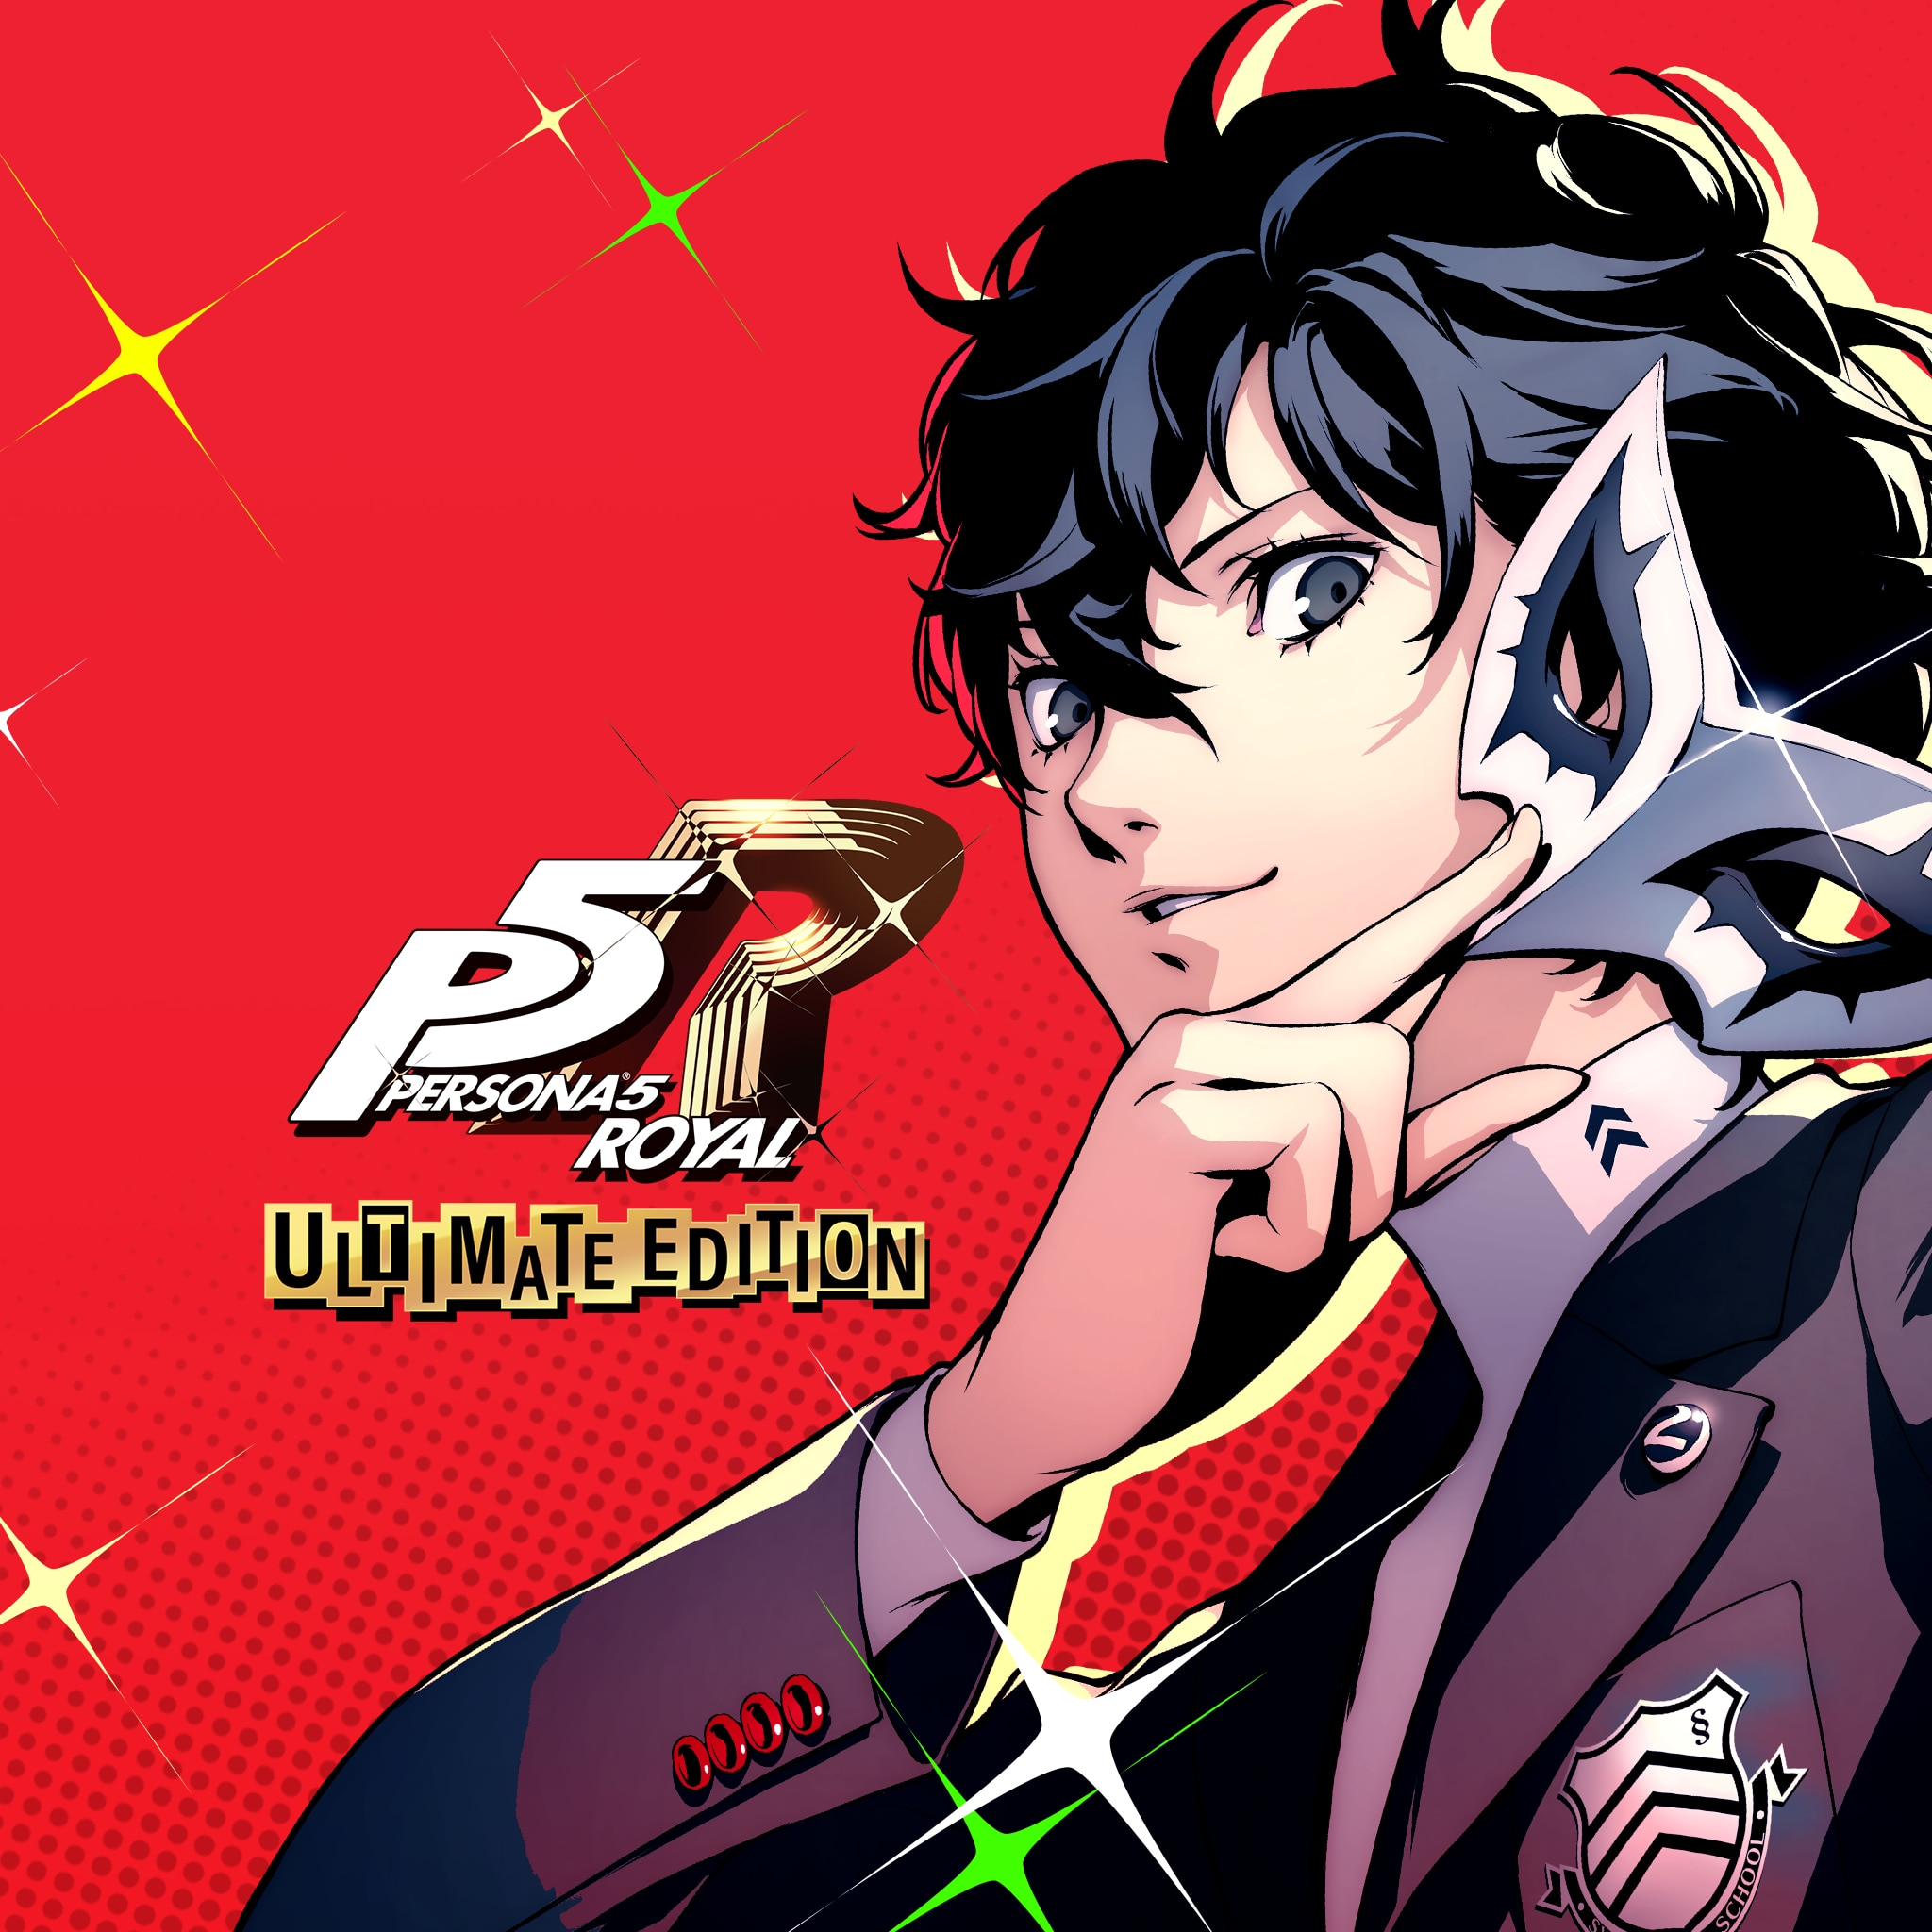 Persona®5 Royal Ultimate Edition